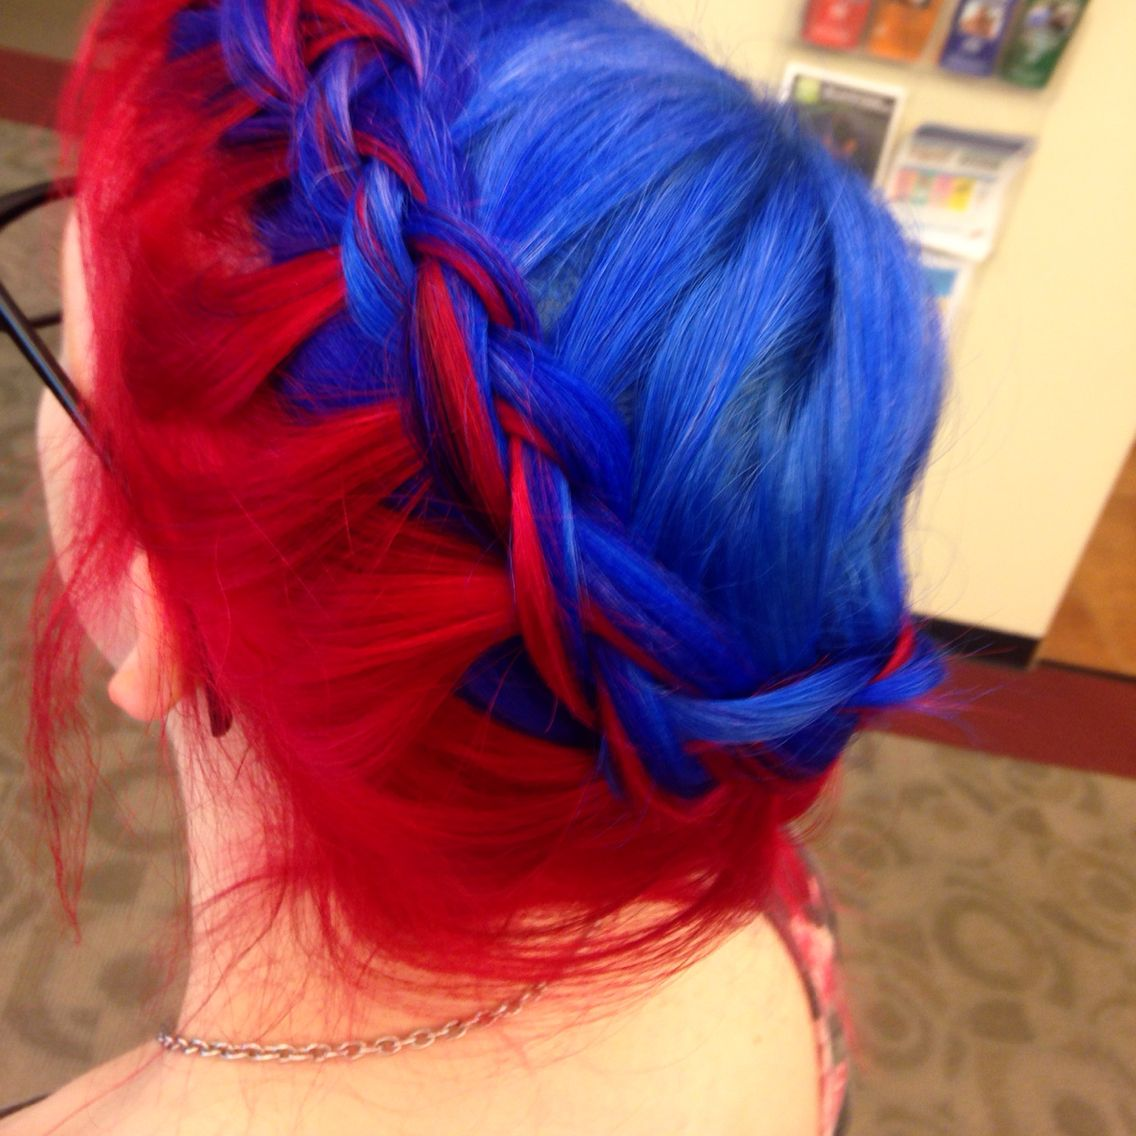 Blue And Red Hair Braided Colors Are Both From Arctic Fox Hair